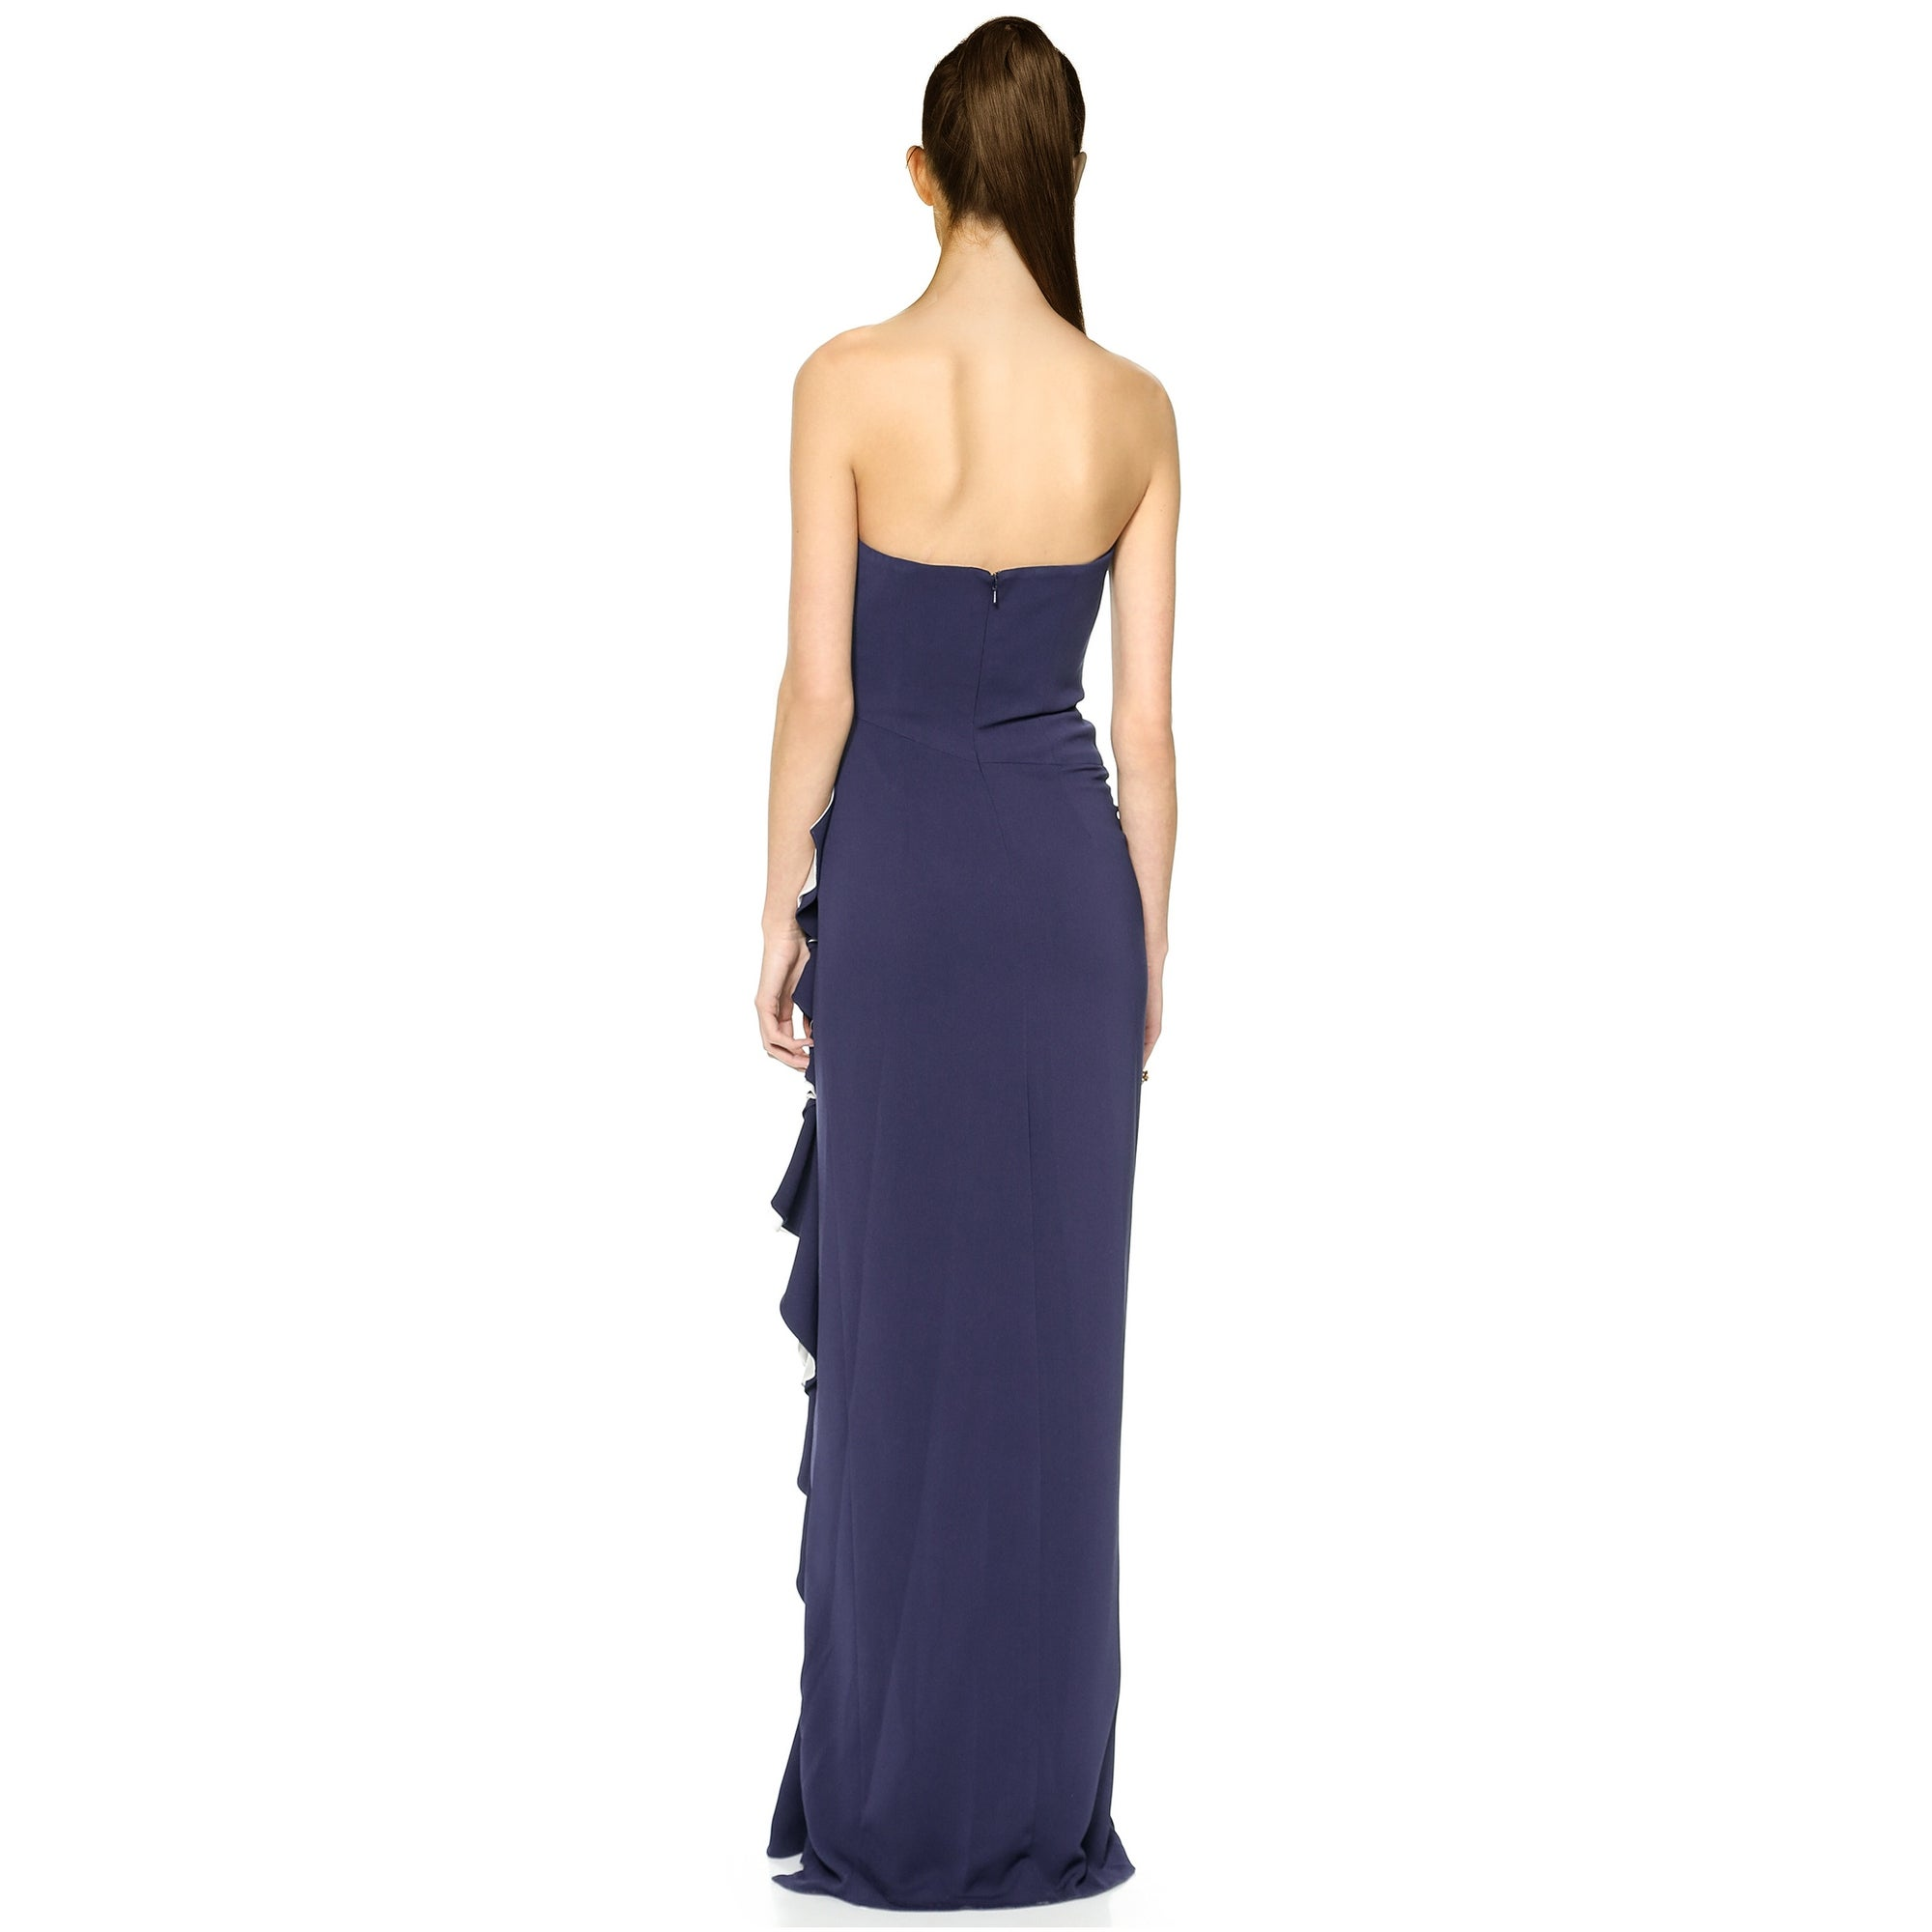 f89618471ef9 Shop Badgley Mischka Contrast Ruffle Strapless Evening Gown Dress - 10 -  Free Shipping Today - Overstock - 18324615